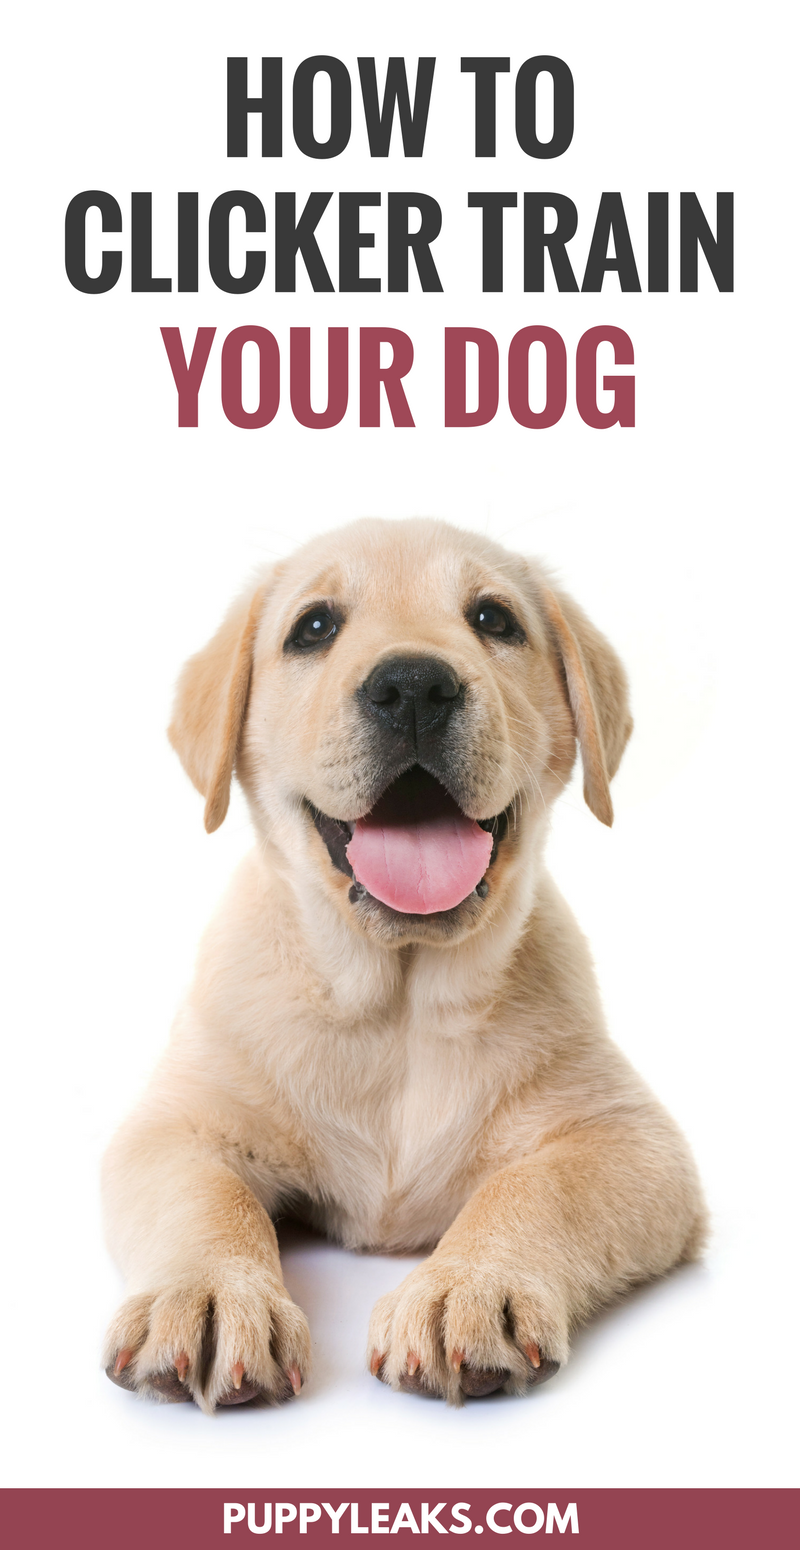 How to clicker train your dog. How to get started with clicker training.